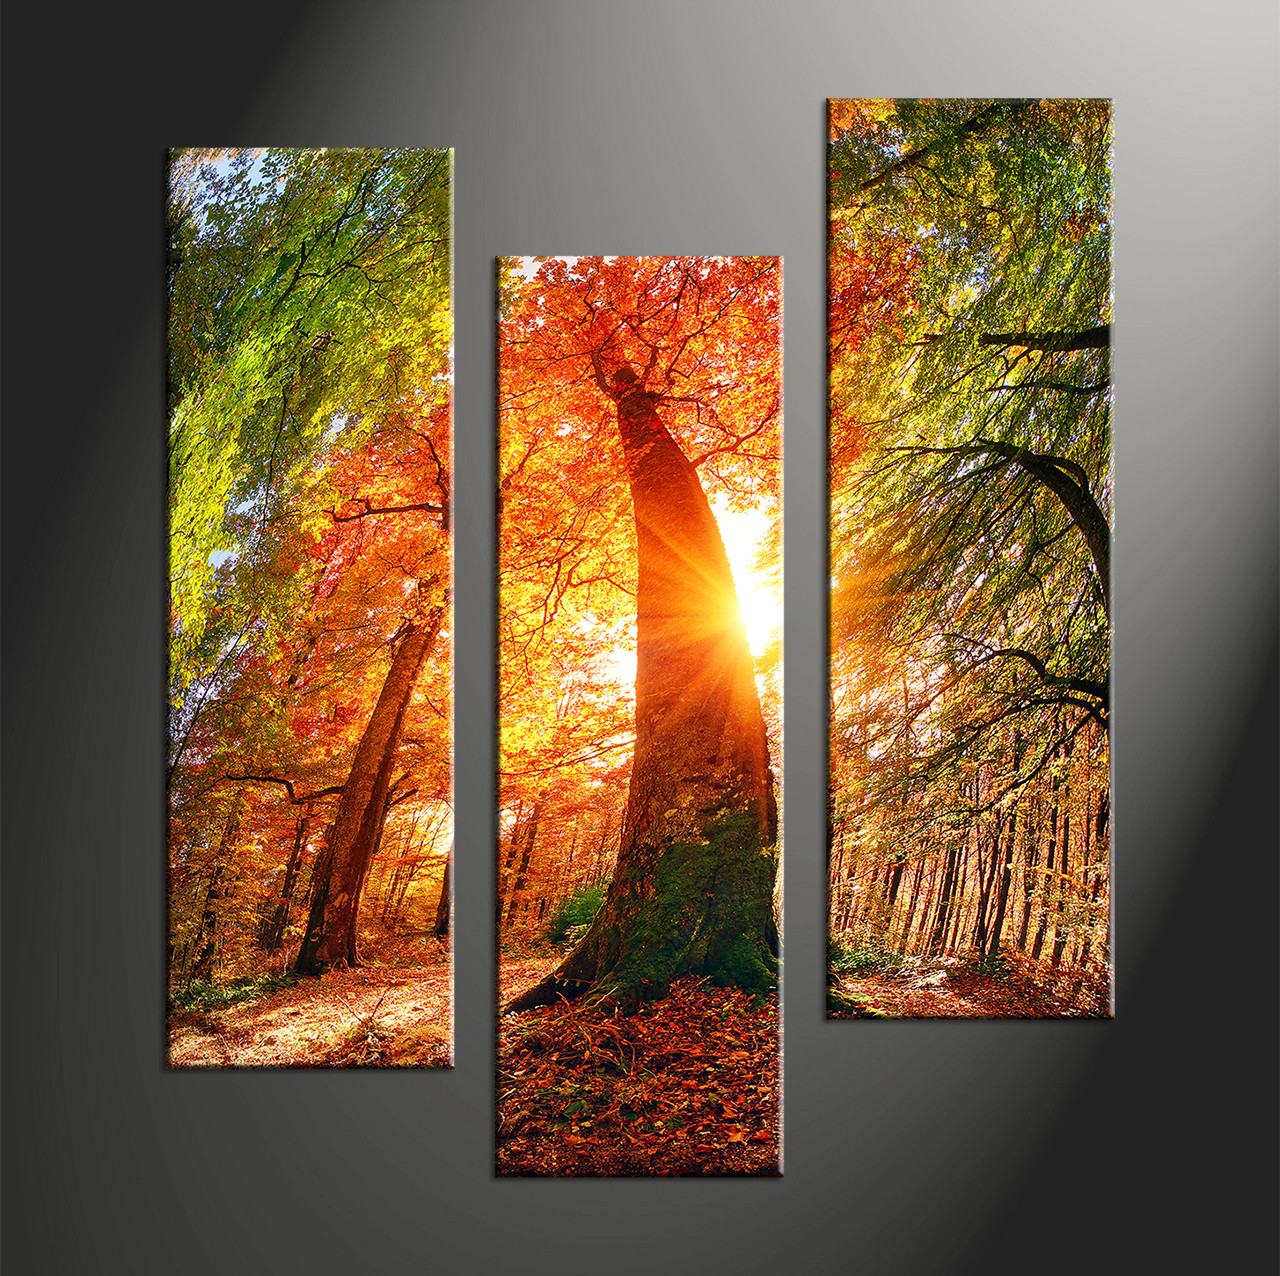 Triptych red scenery sunrise multi panel canvas for 3 by 3 prints